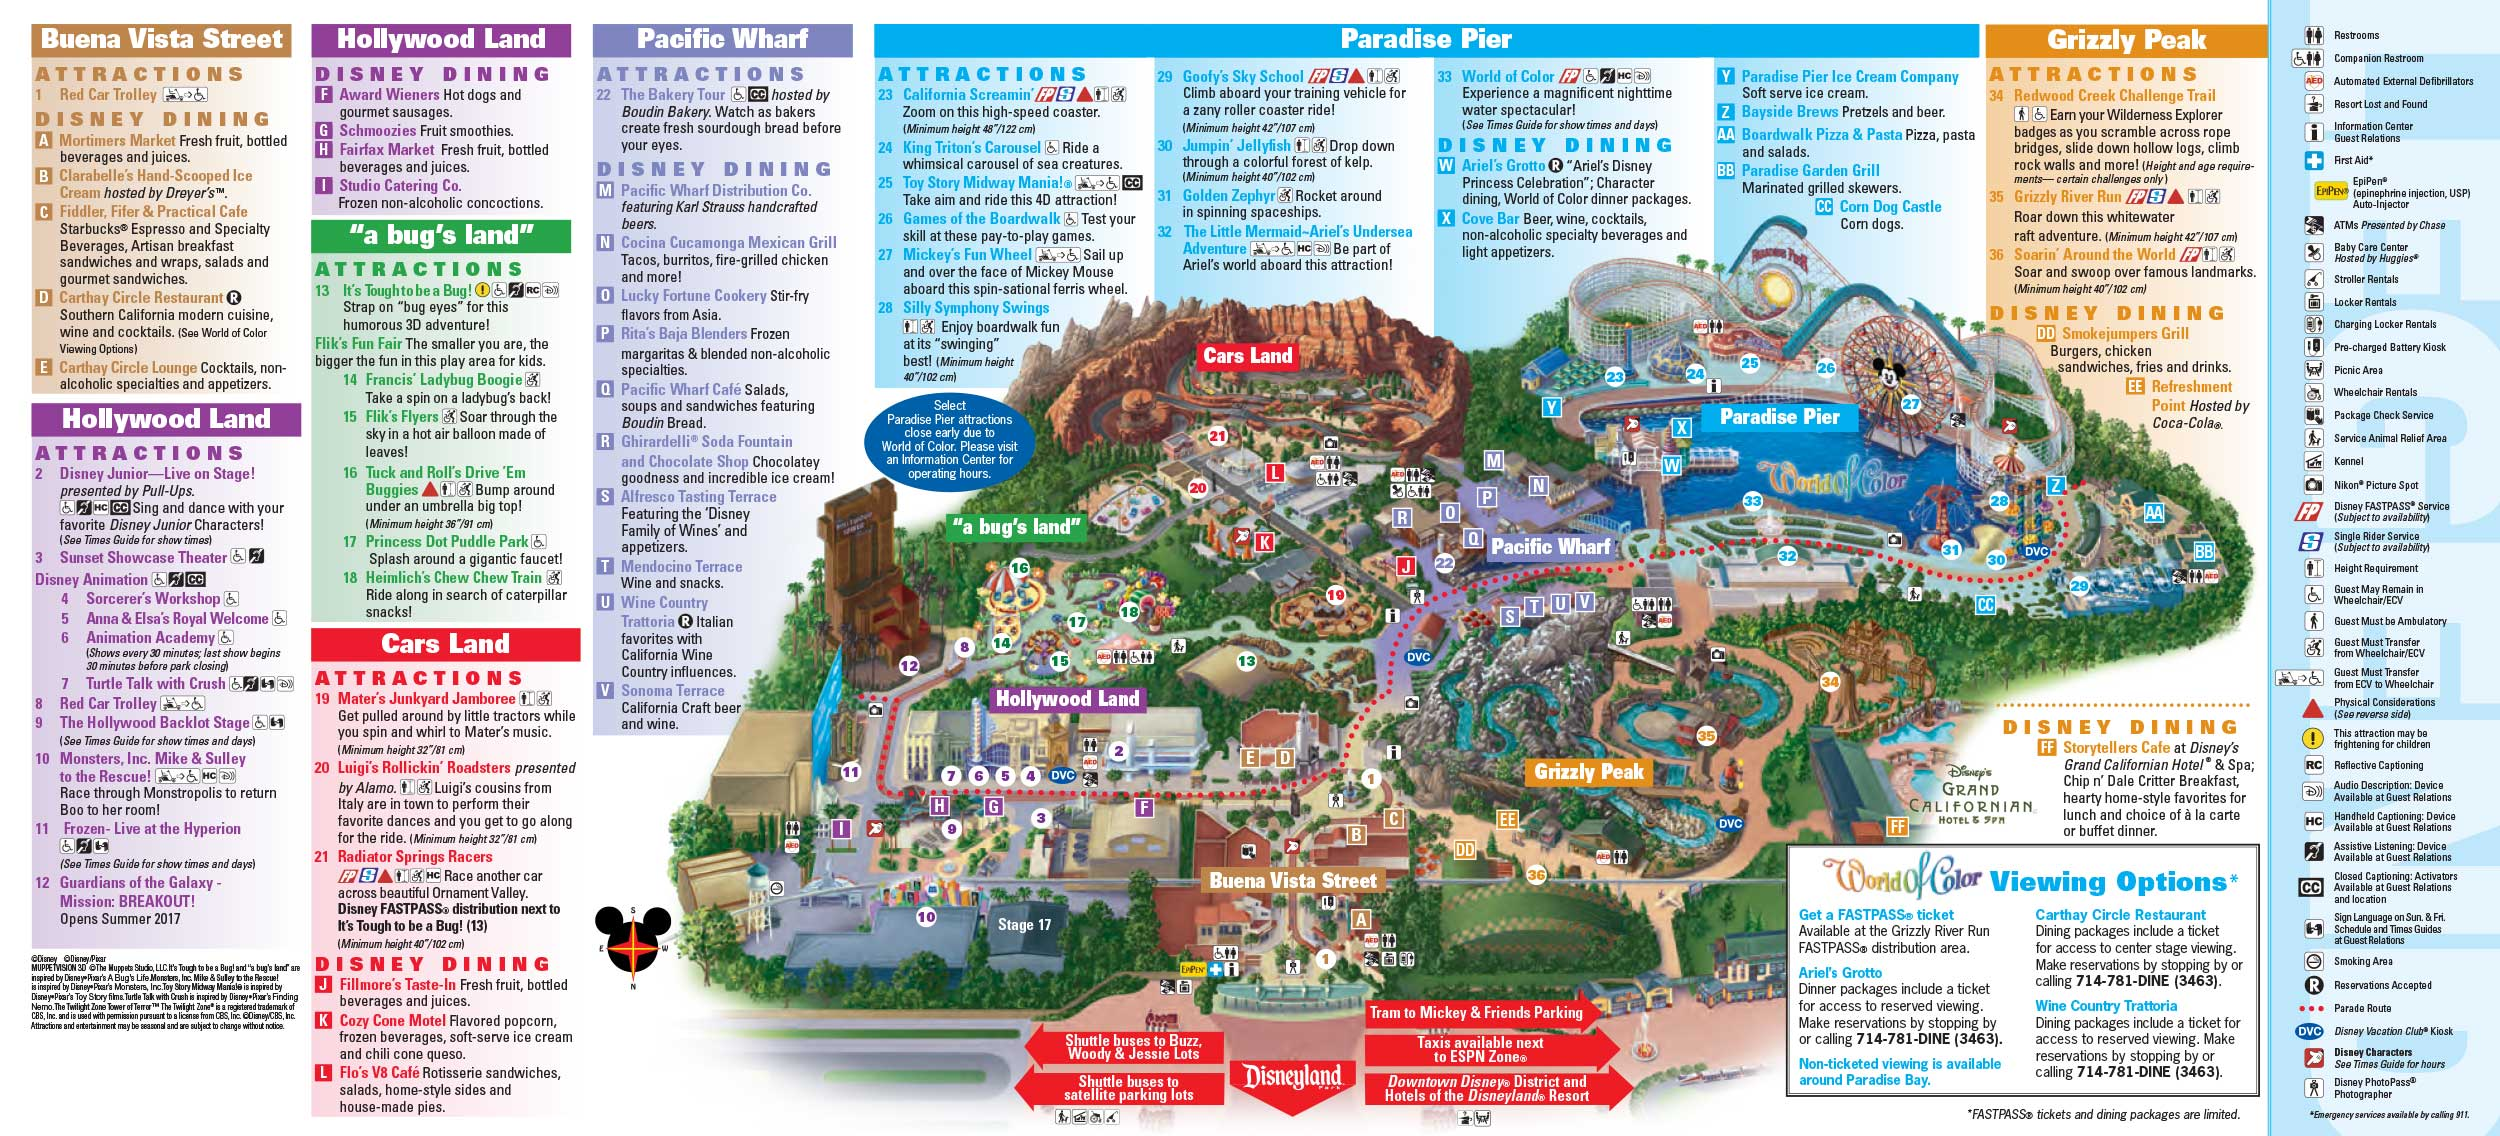 Disneyland Resort Map In California Map Of Disneyland